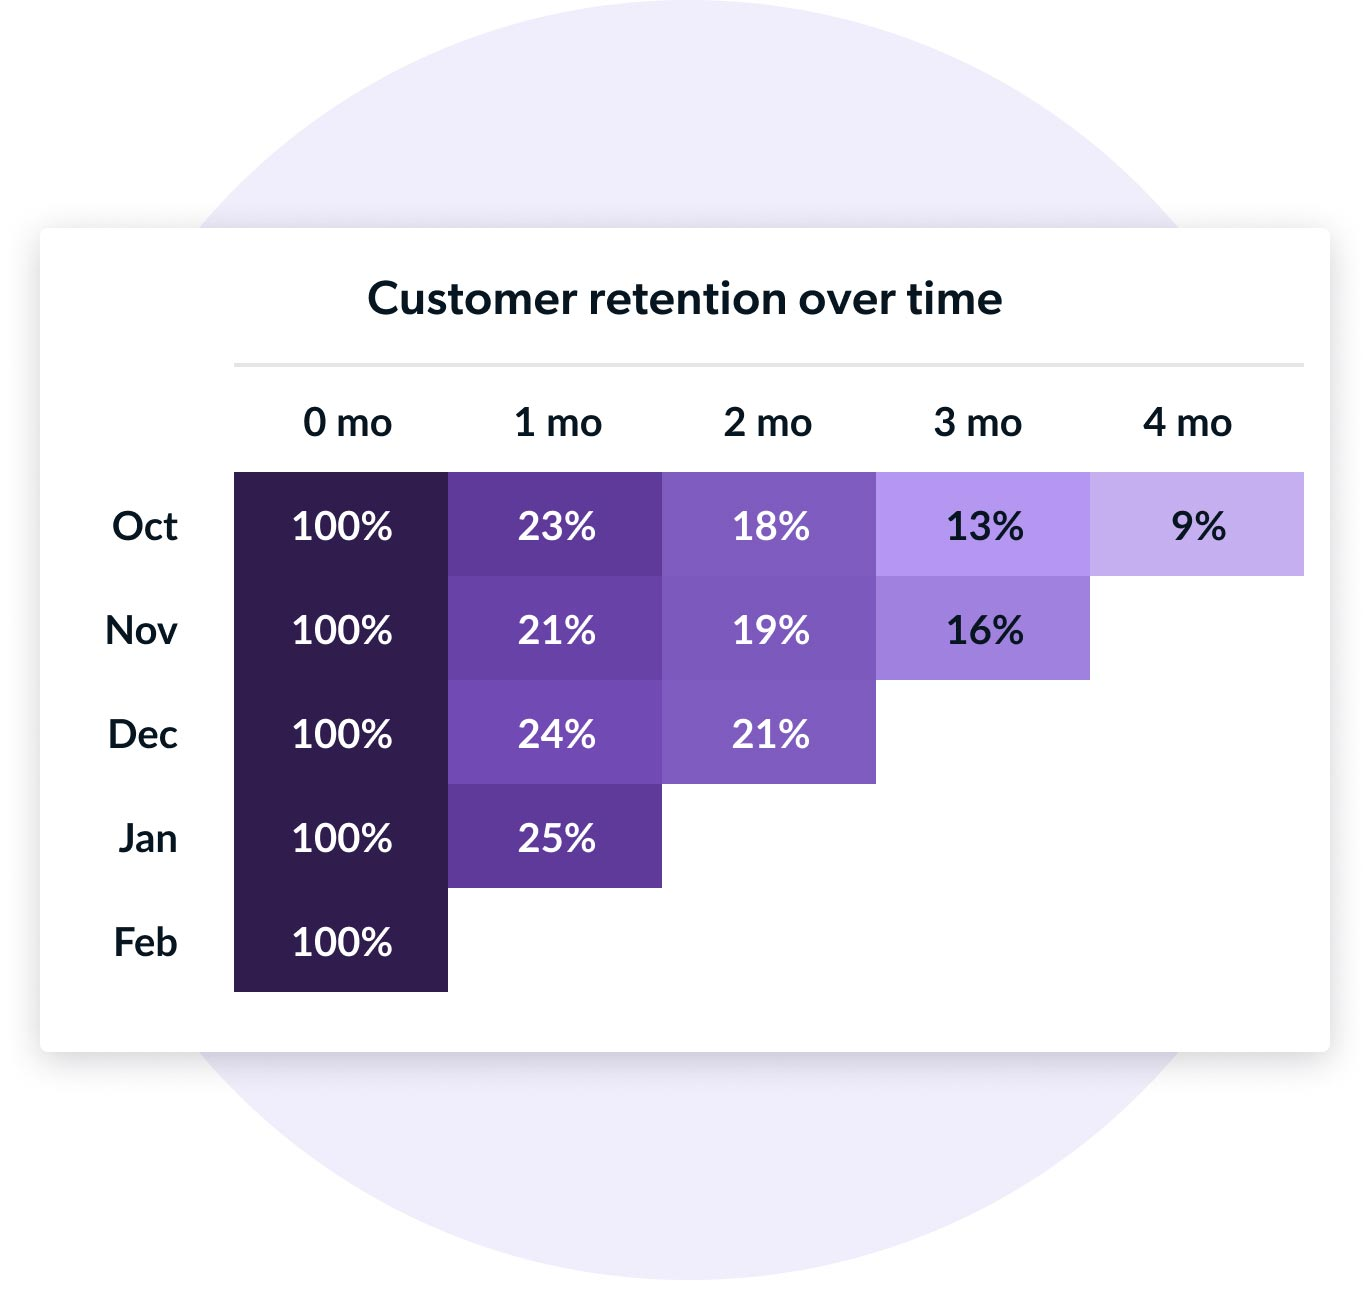 Chart showing customer retention over time